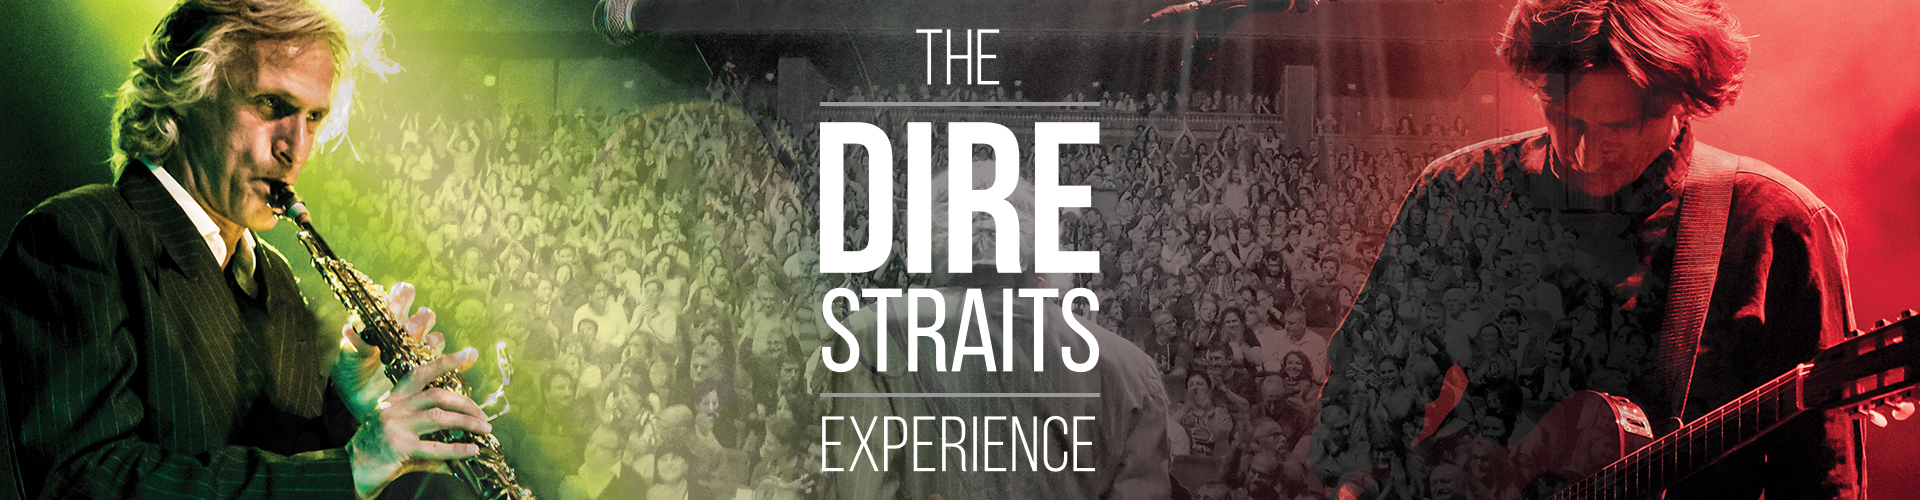 The Dire Straits Experience promo banner